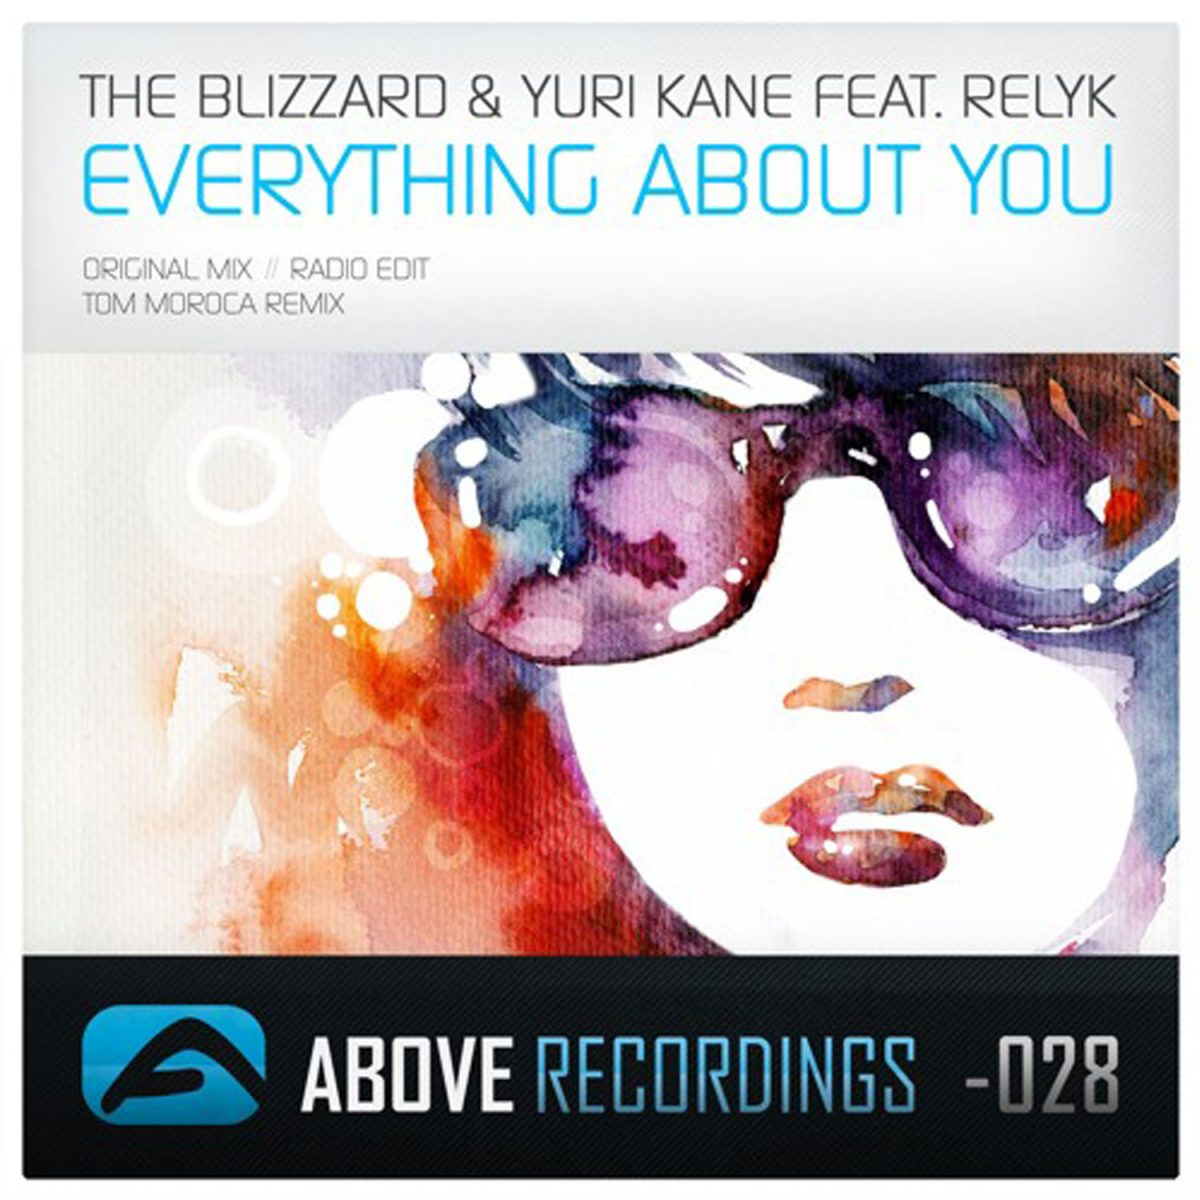 The Blizzard & Yuri Kane feat. Relyk - Everything About You on Armada Music